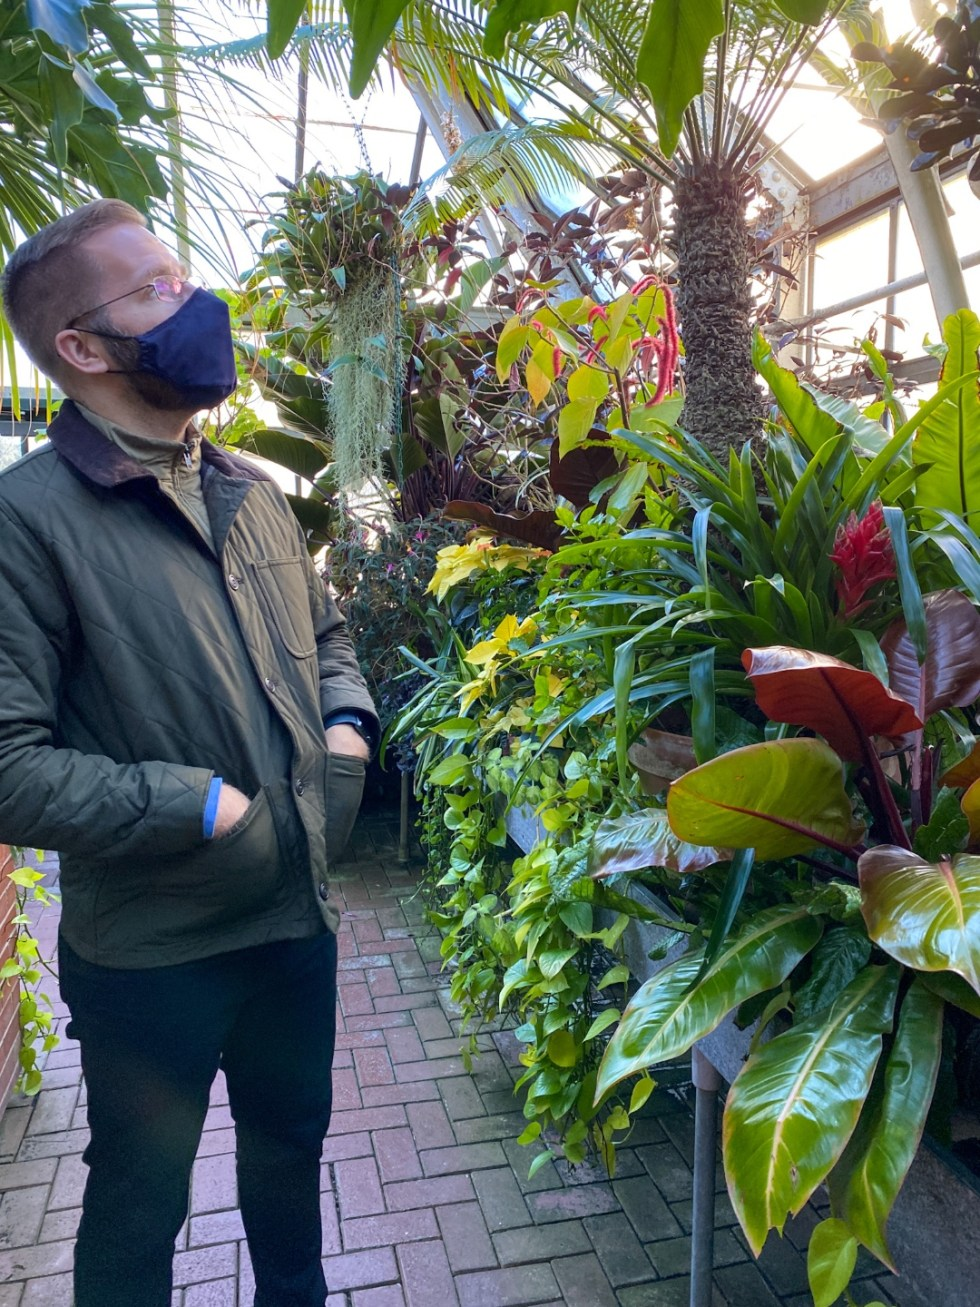 Christmas in Asheville: a Weekend Getaway During the Holidays - I'm Fixin' To - @imfixintoblog |Christmas in Asheville NC by popular NC lifestyle blog, I'm Fixin' To: image of a man walking through a greenhouse and looking at exotic plants.